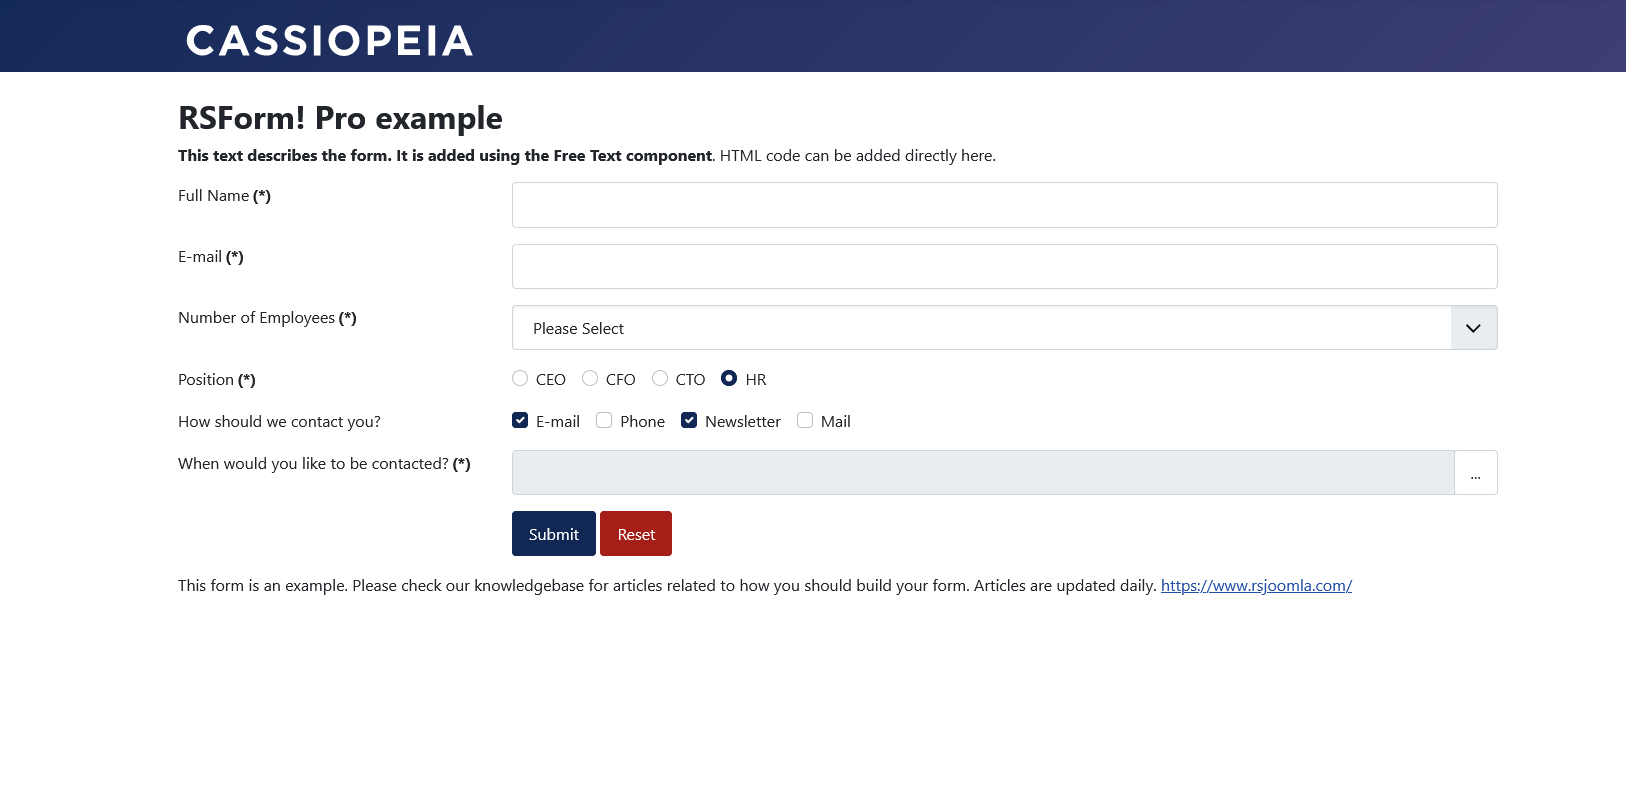 Frontend Bootstrap 5 layout